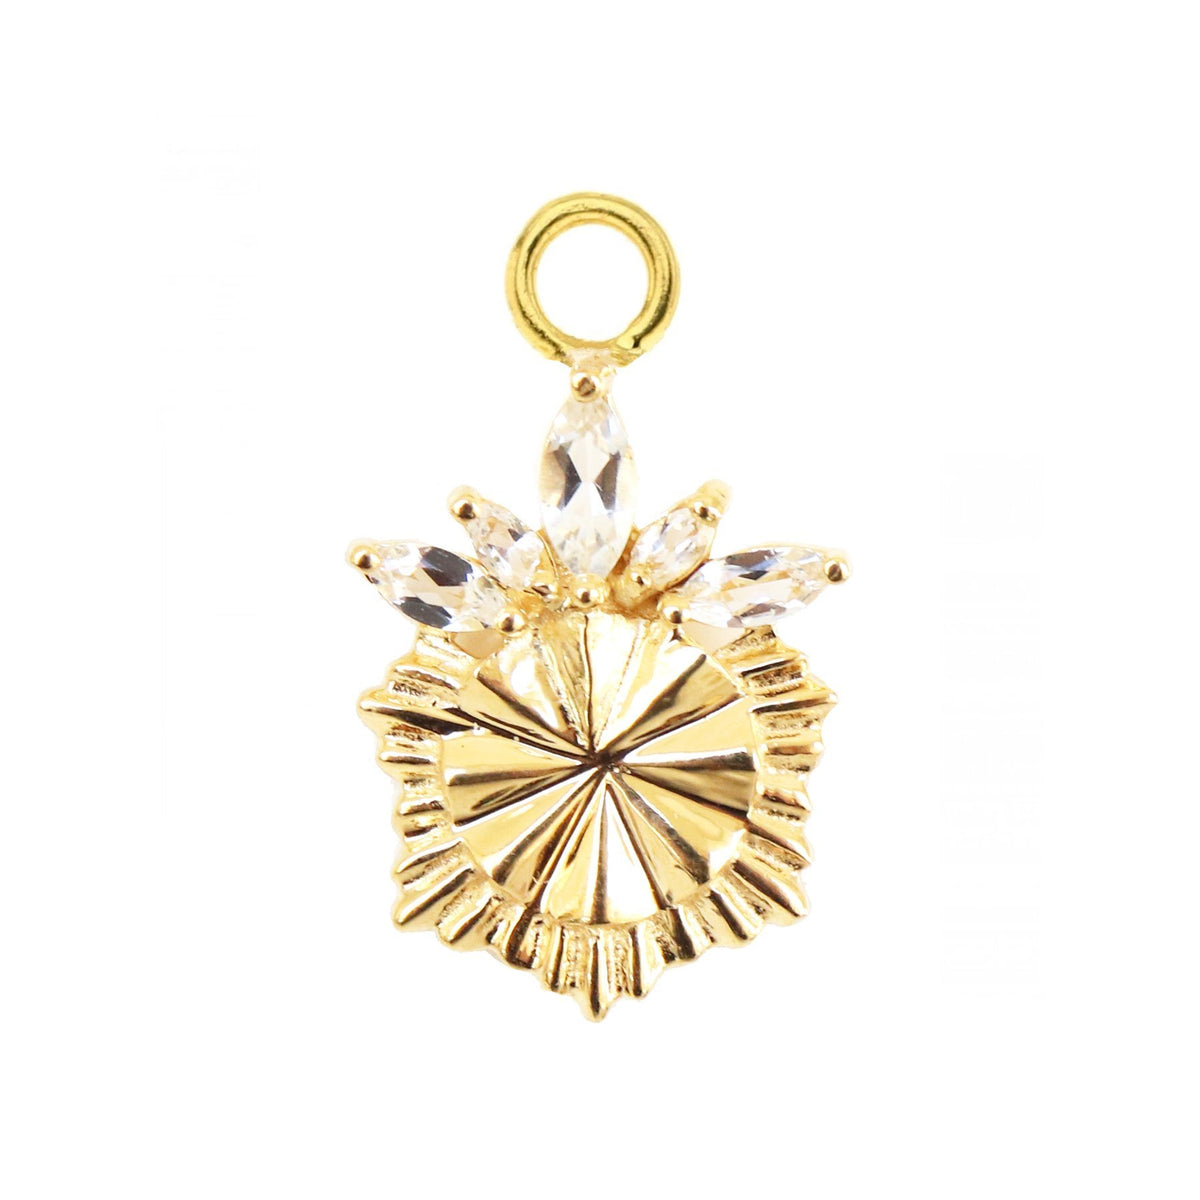 MINI BELIEVE SOLEIL ICON - CUBIC ZIRCONIA & GOLD - SO PRETTY CARA COTTER